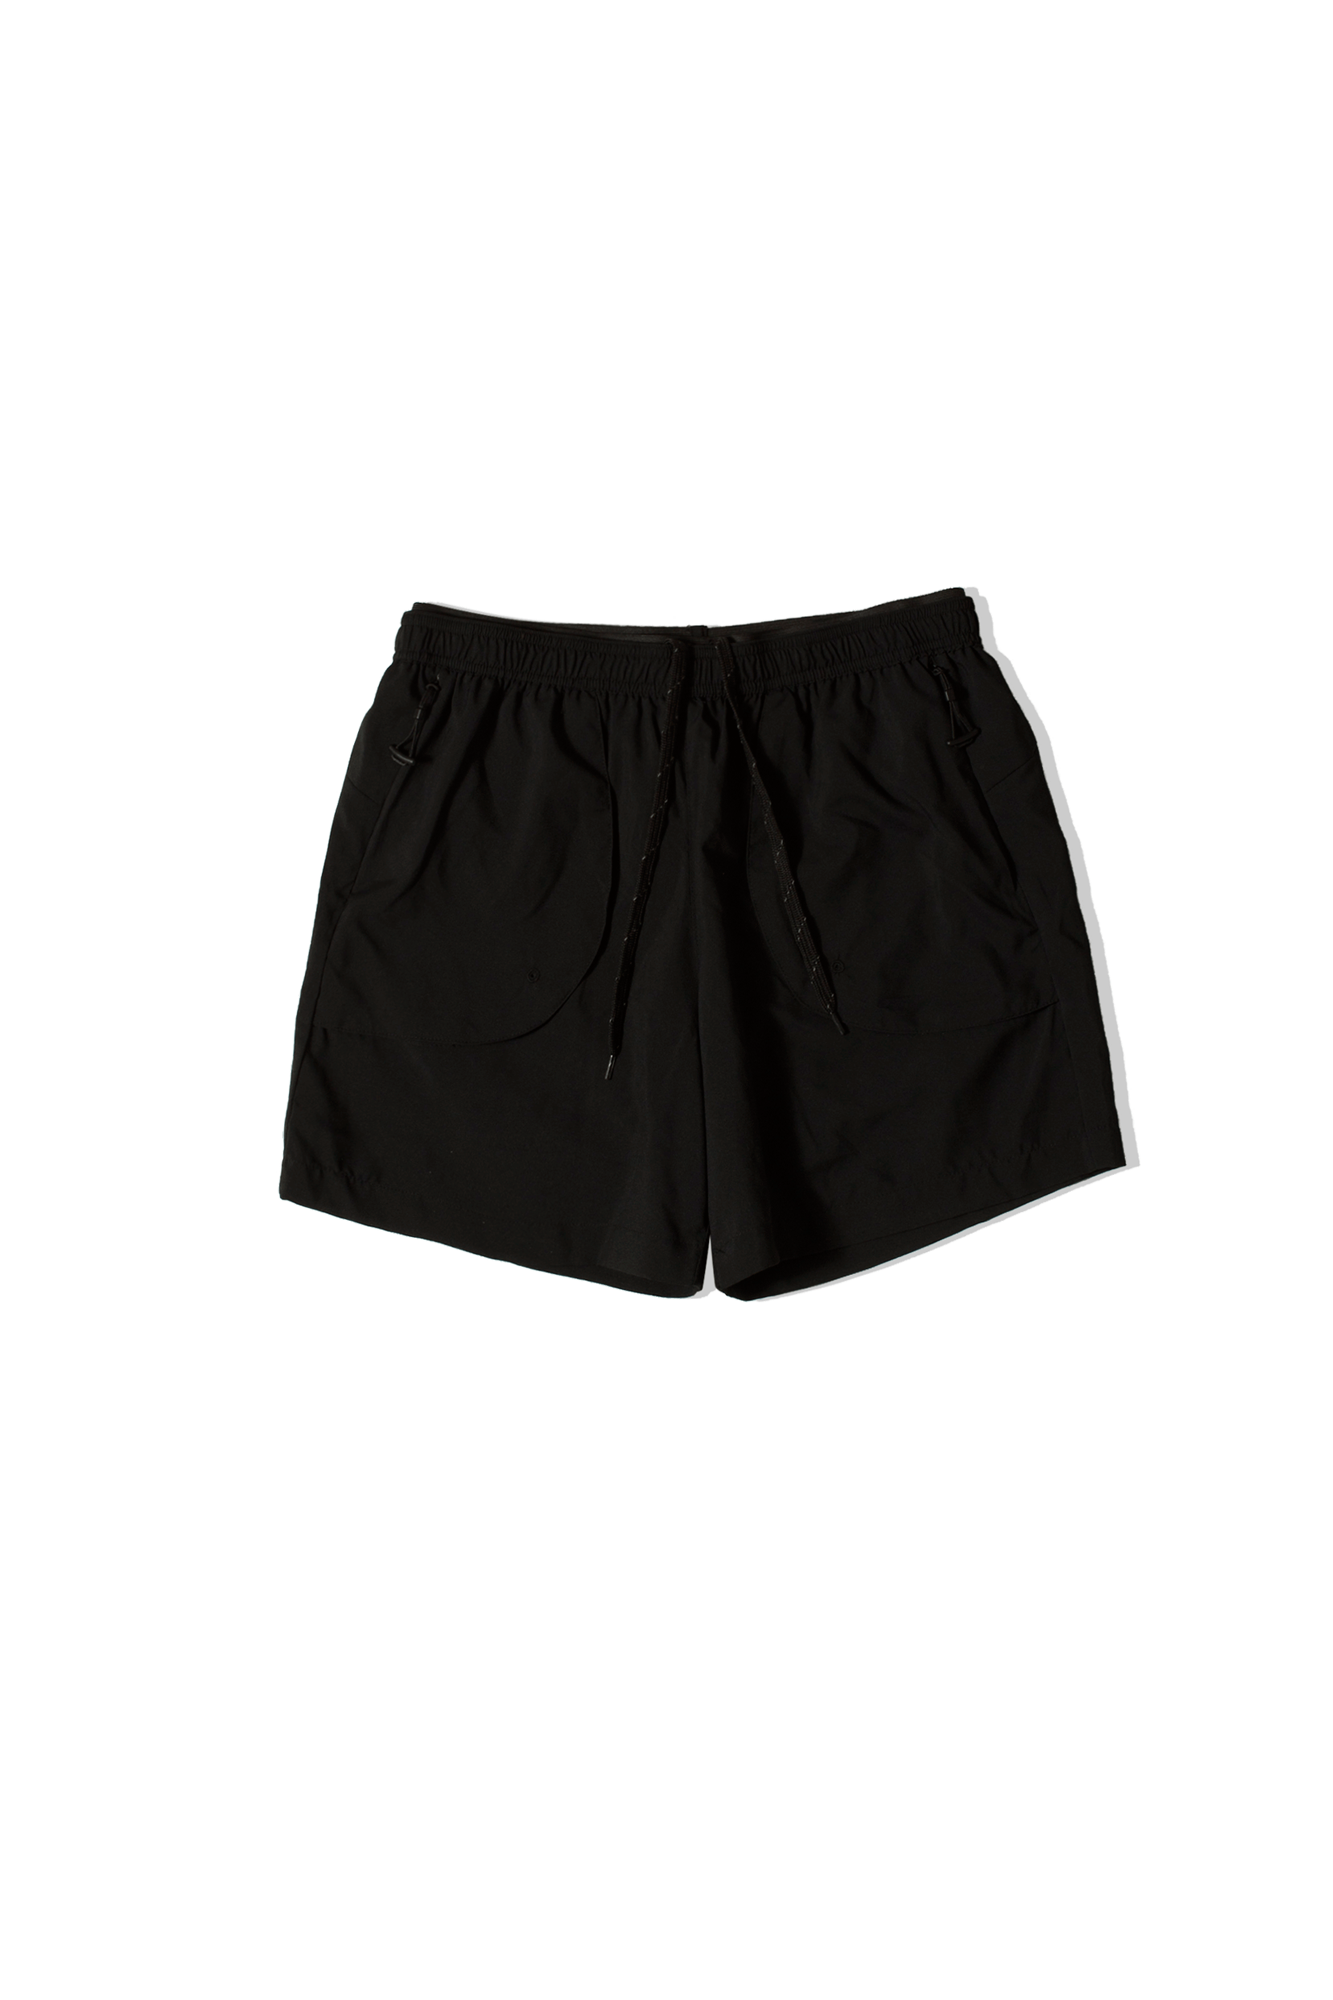 Soulland Shorts Harley Shorts Black 11026-1057#000#BLK#S - One Block Down